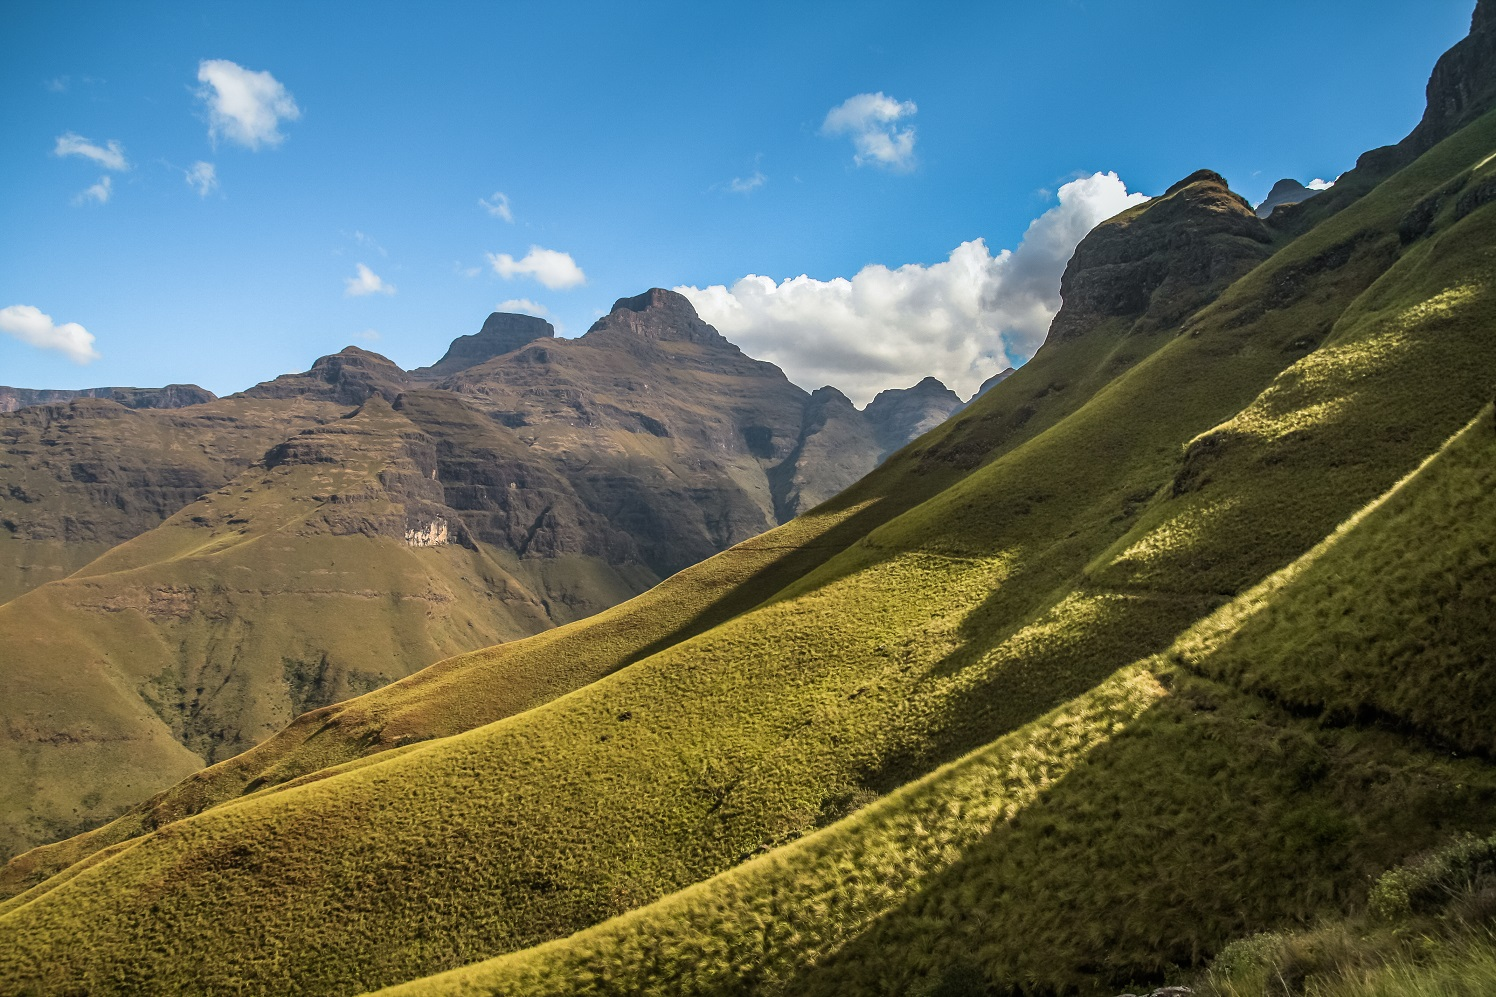 Scenic view of Cathedral Peak in the Drakensberg Mountains, South Africa